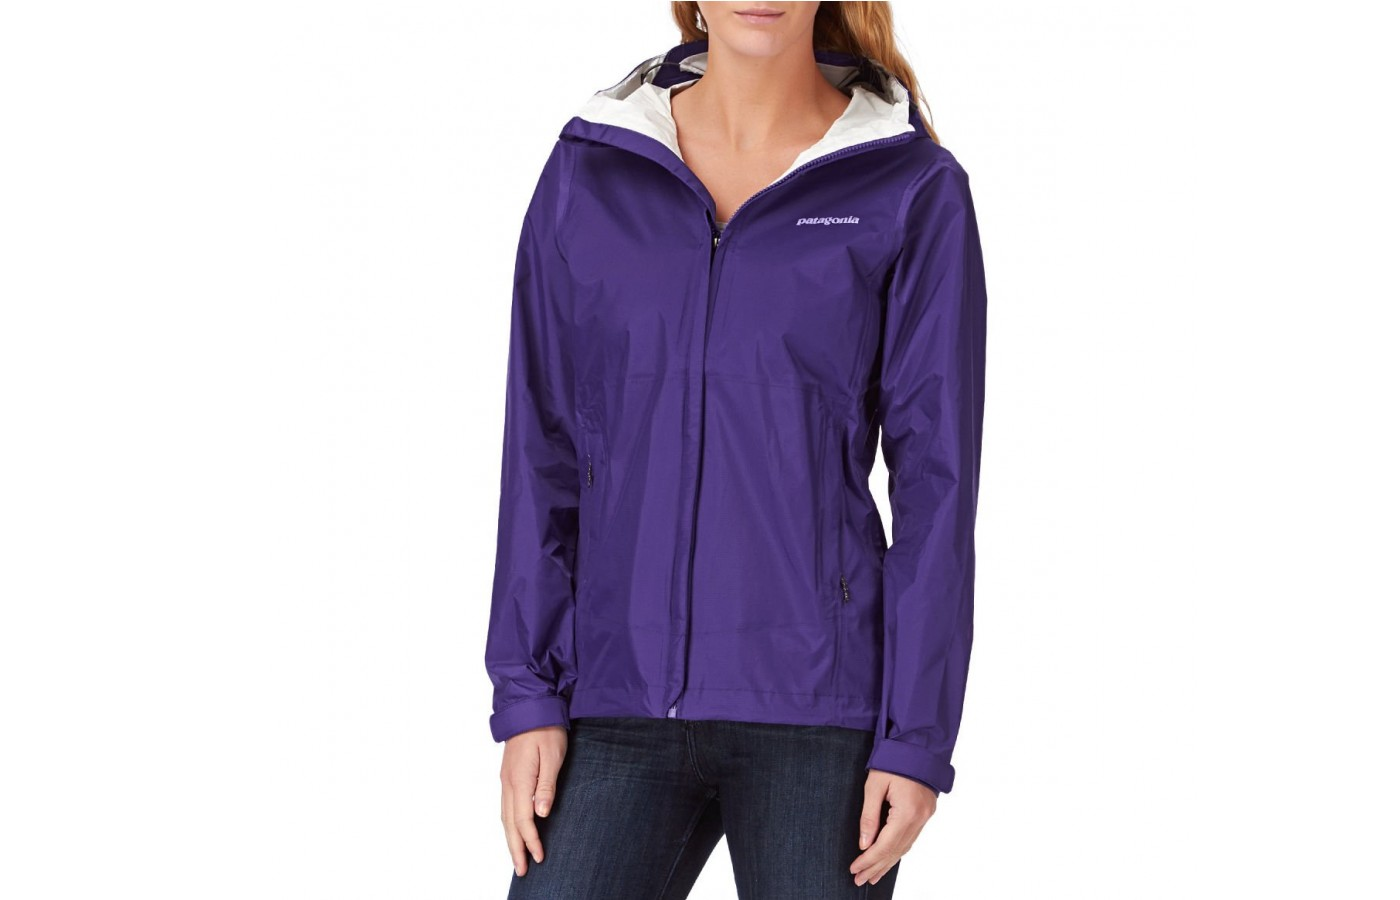 This jacket is perfect for lighter rain conditions.